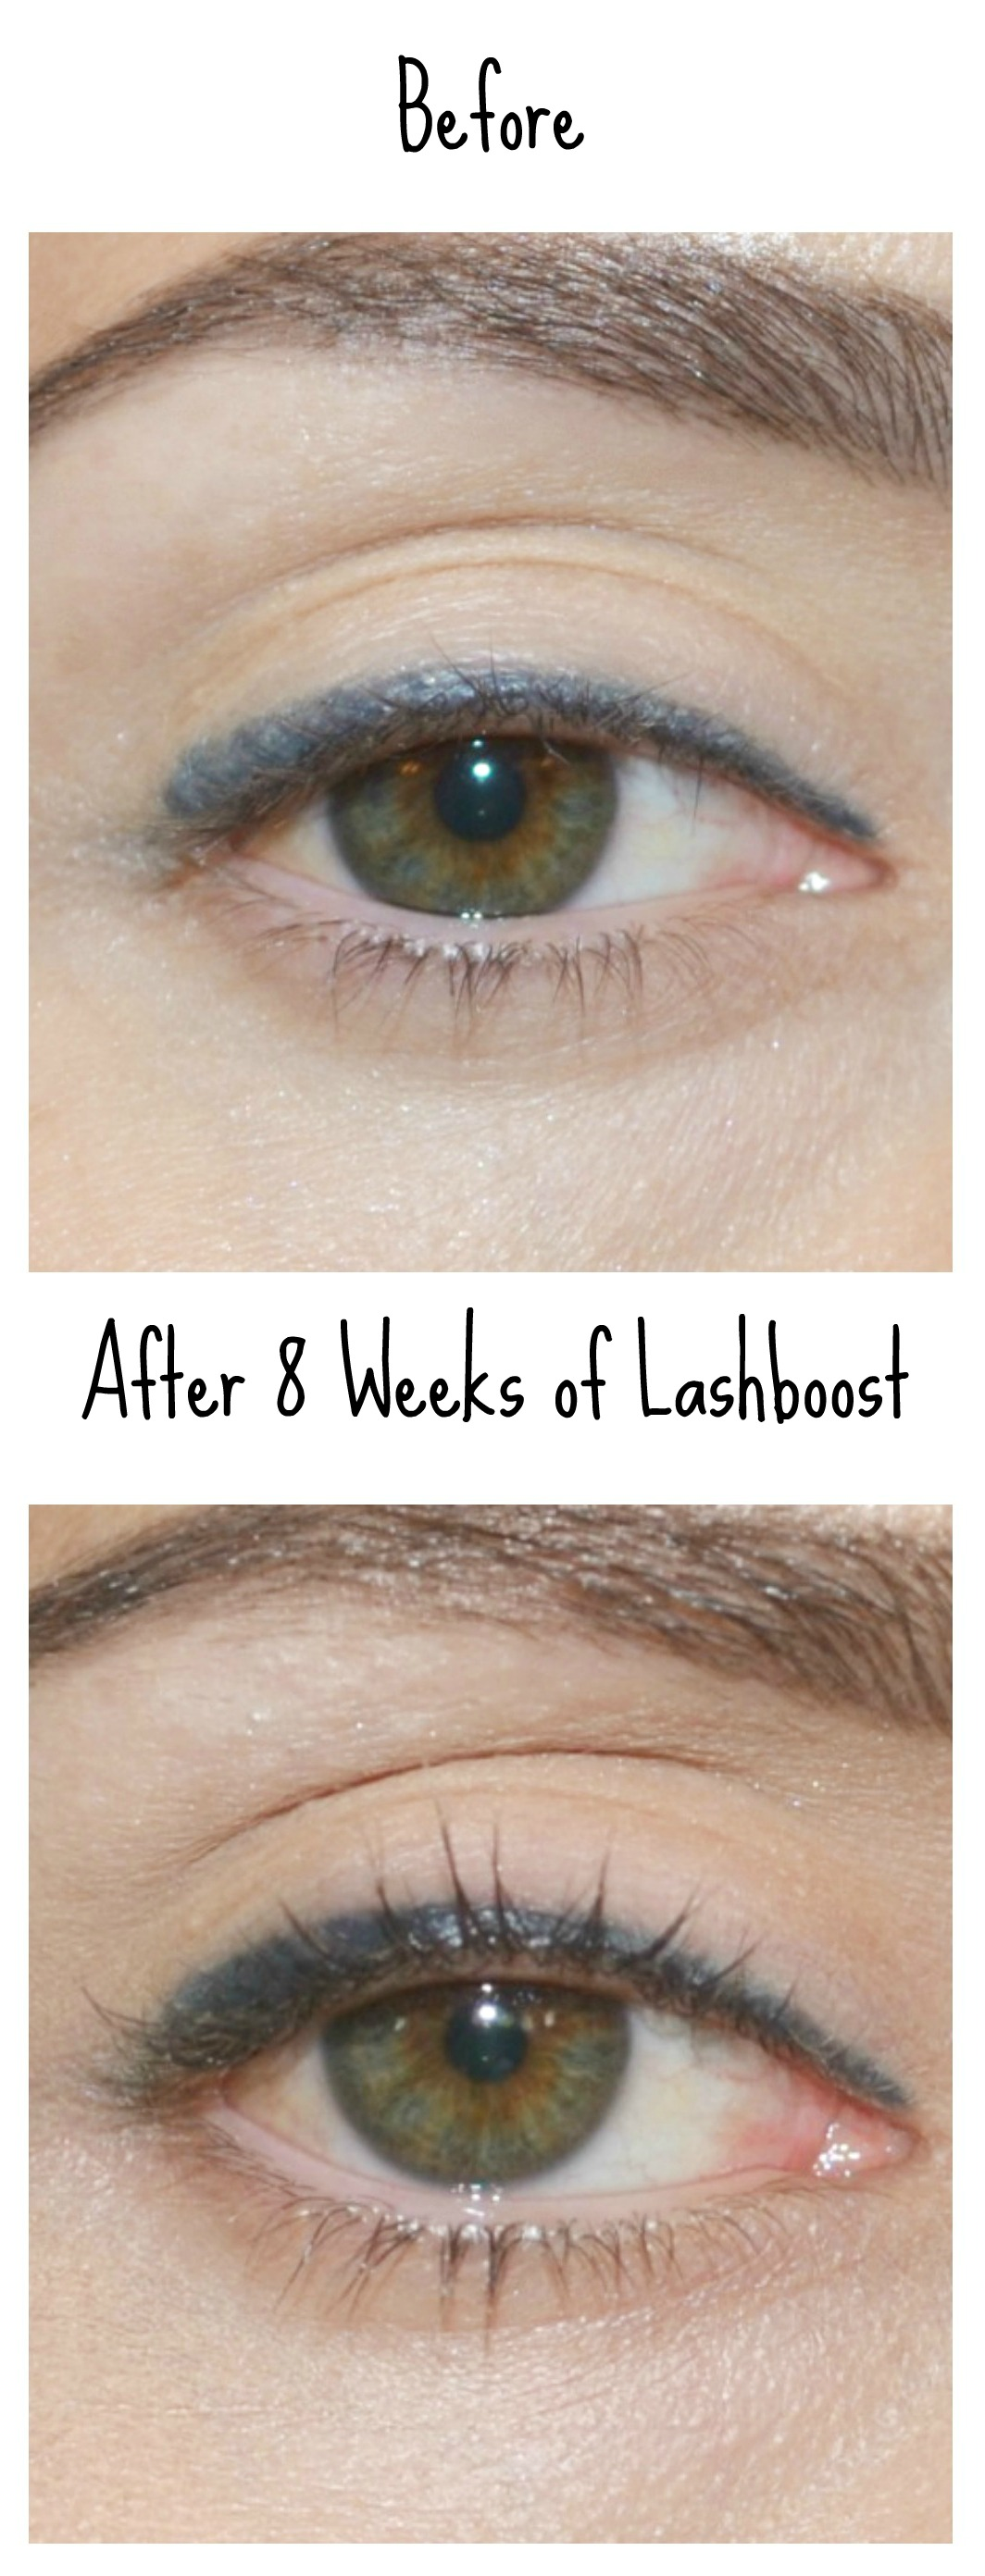 Rodan + Fields Lash Boost Review - Pretty Proof